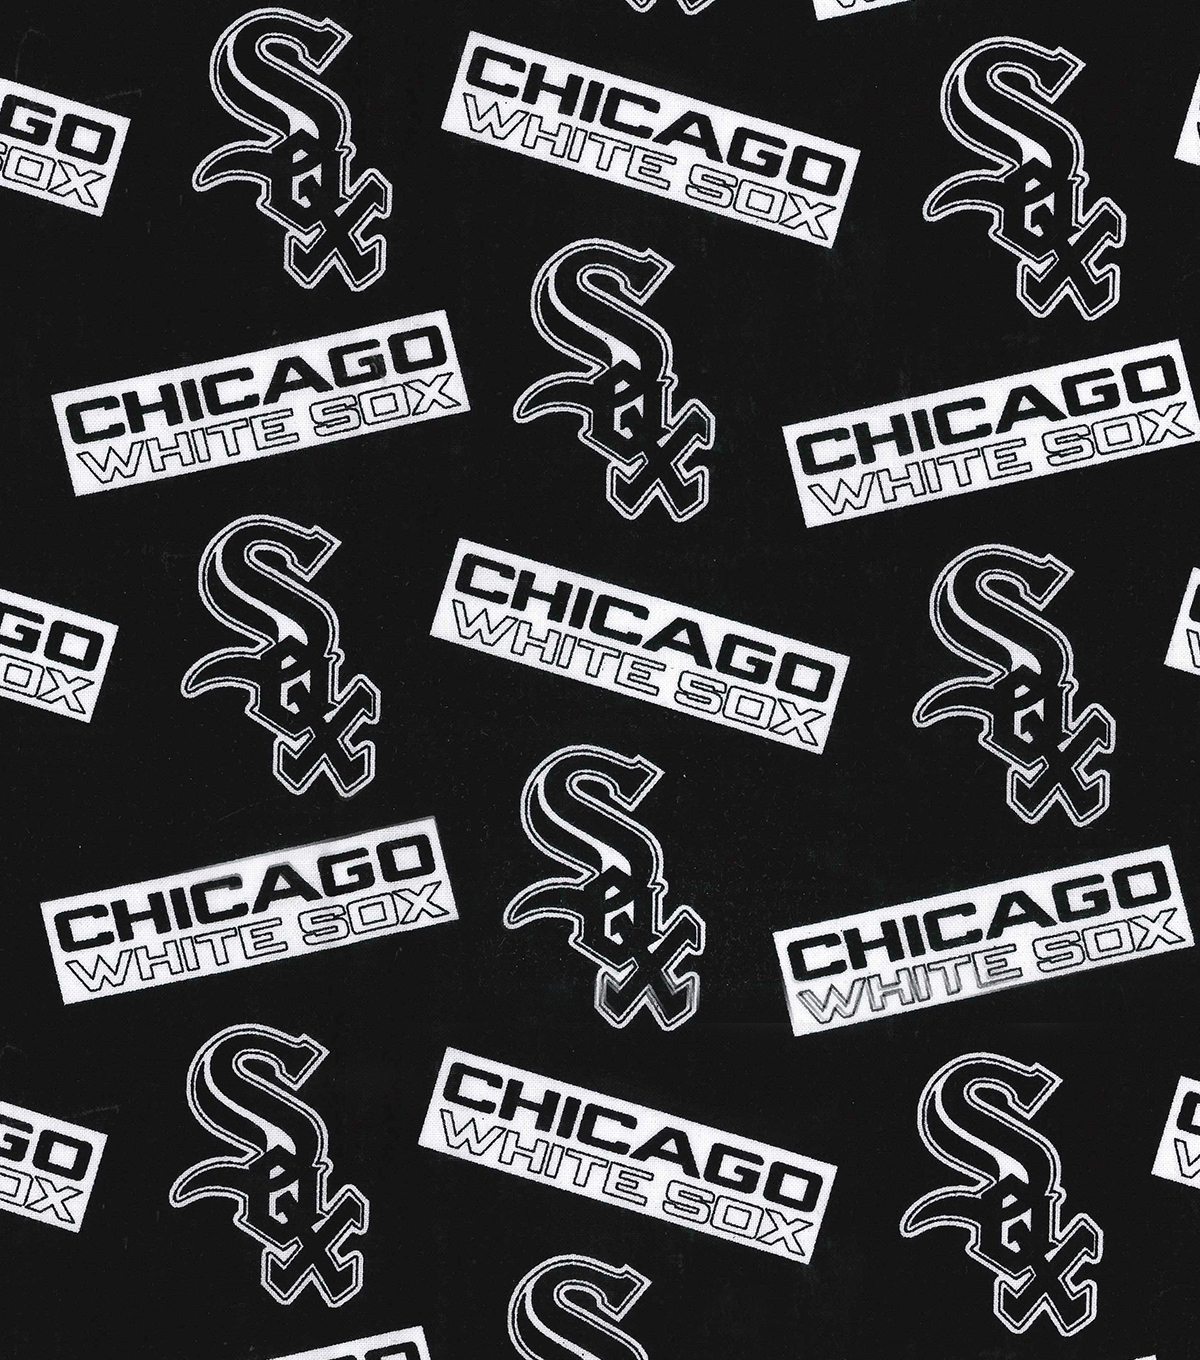 Chicago White Sox Cotton Fabric -Black